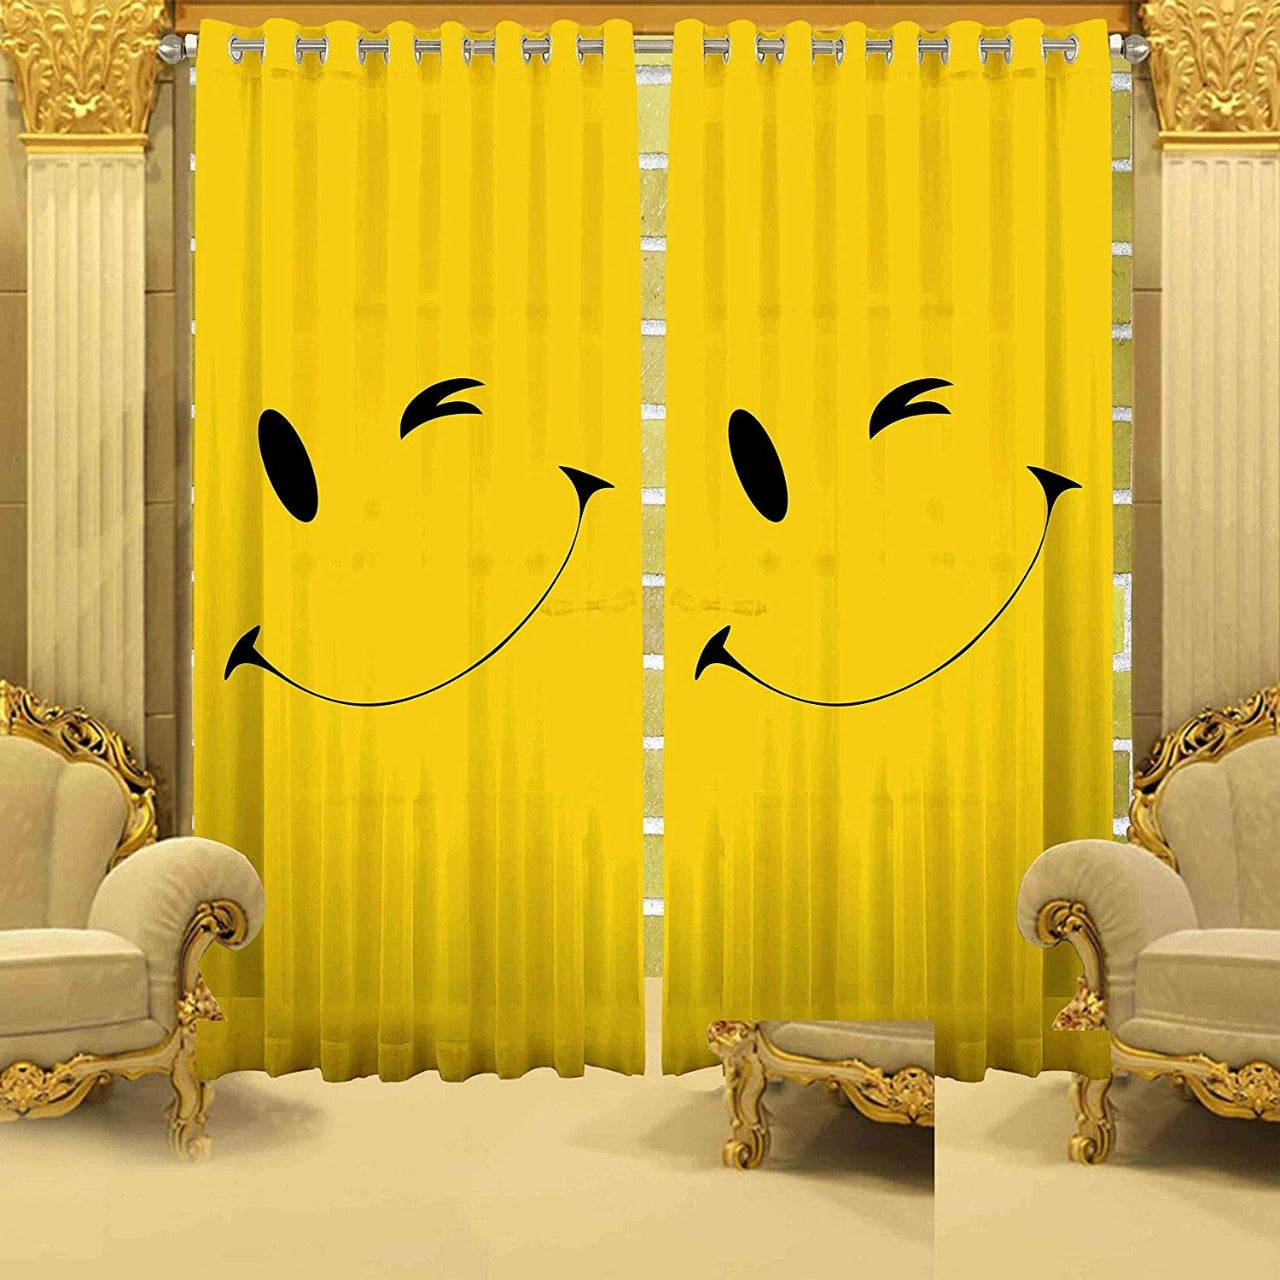 Digital Heavy Long Crush Curtains - Winky Wink